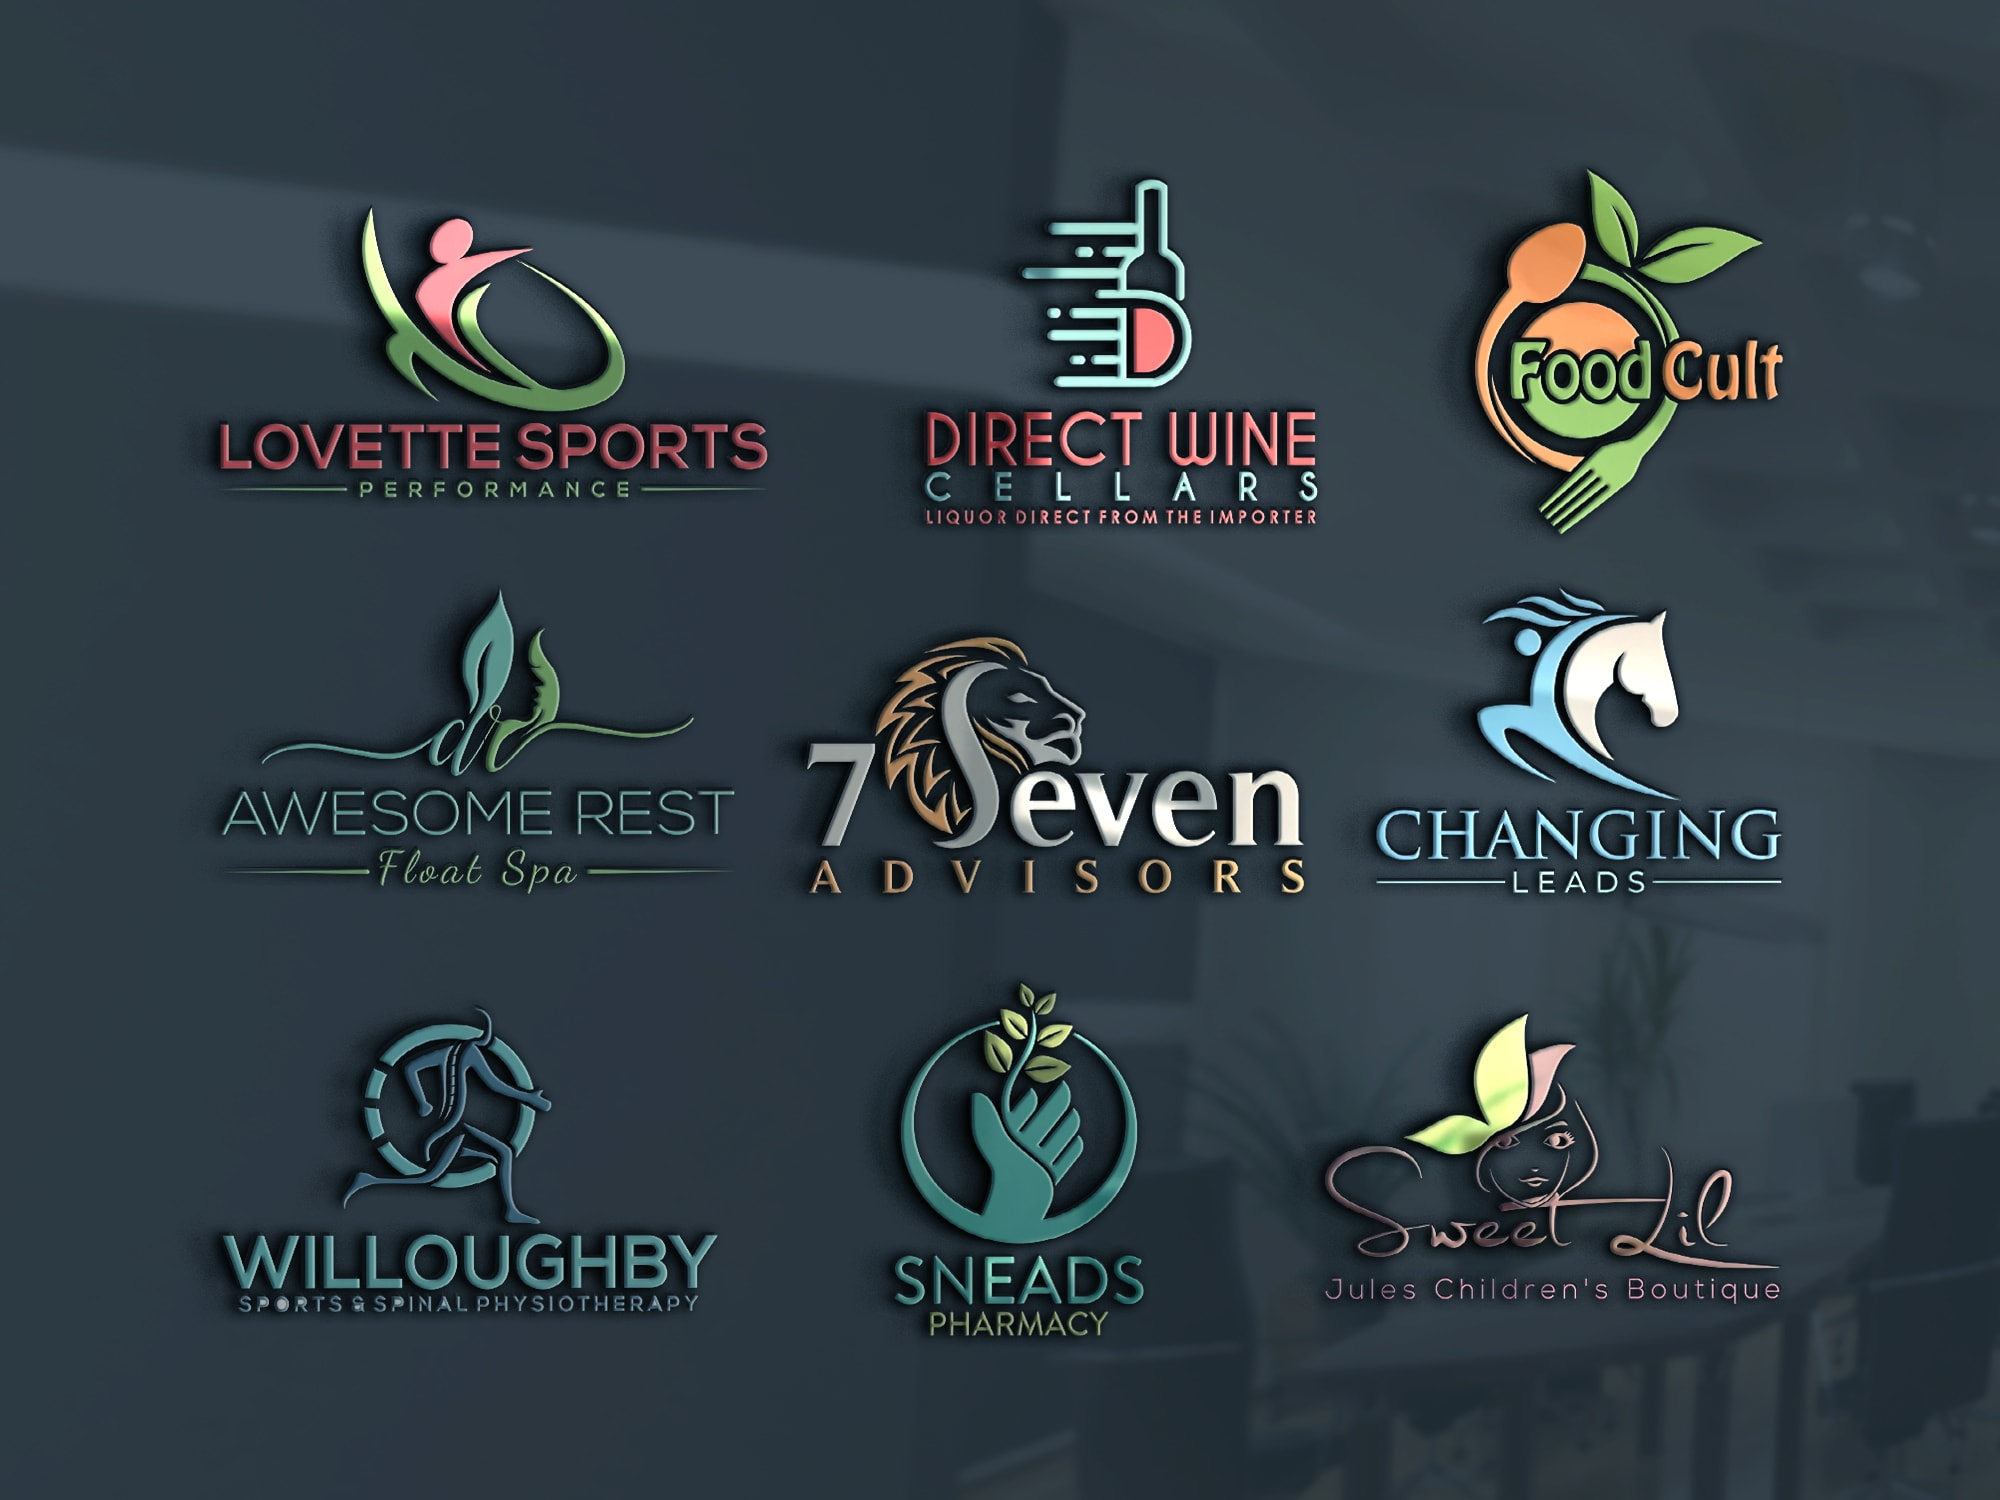 I will design professional and modern business logo or branding